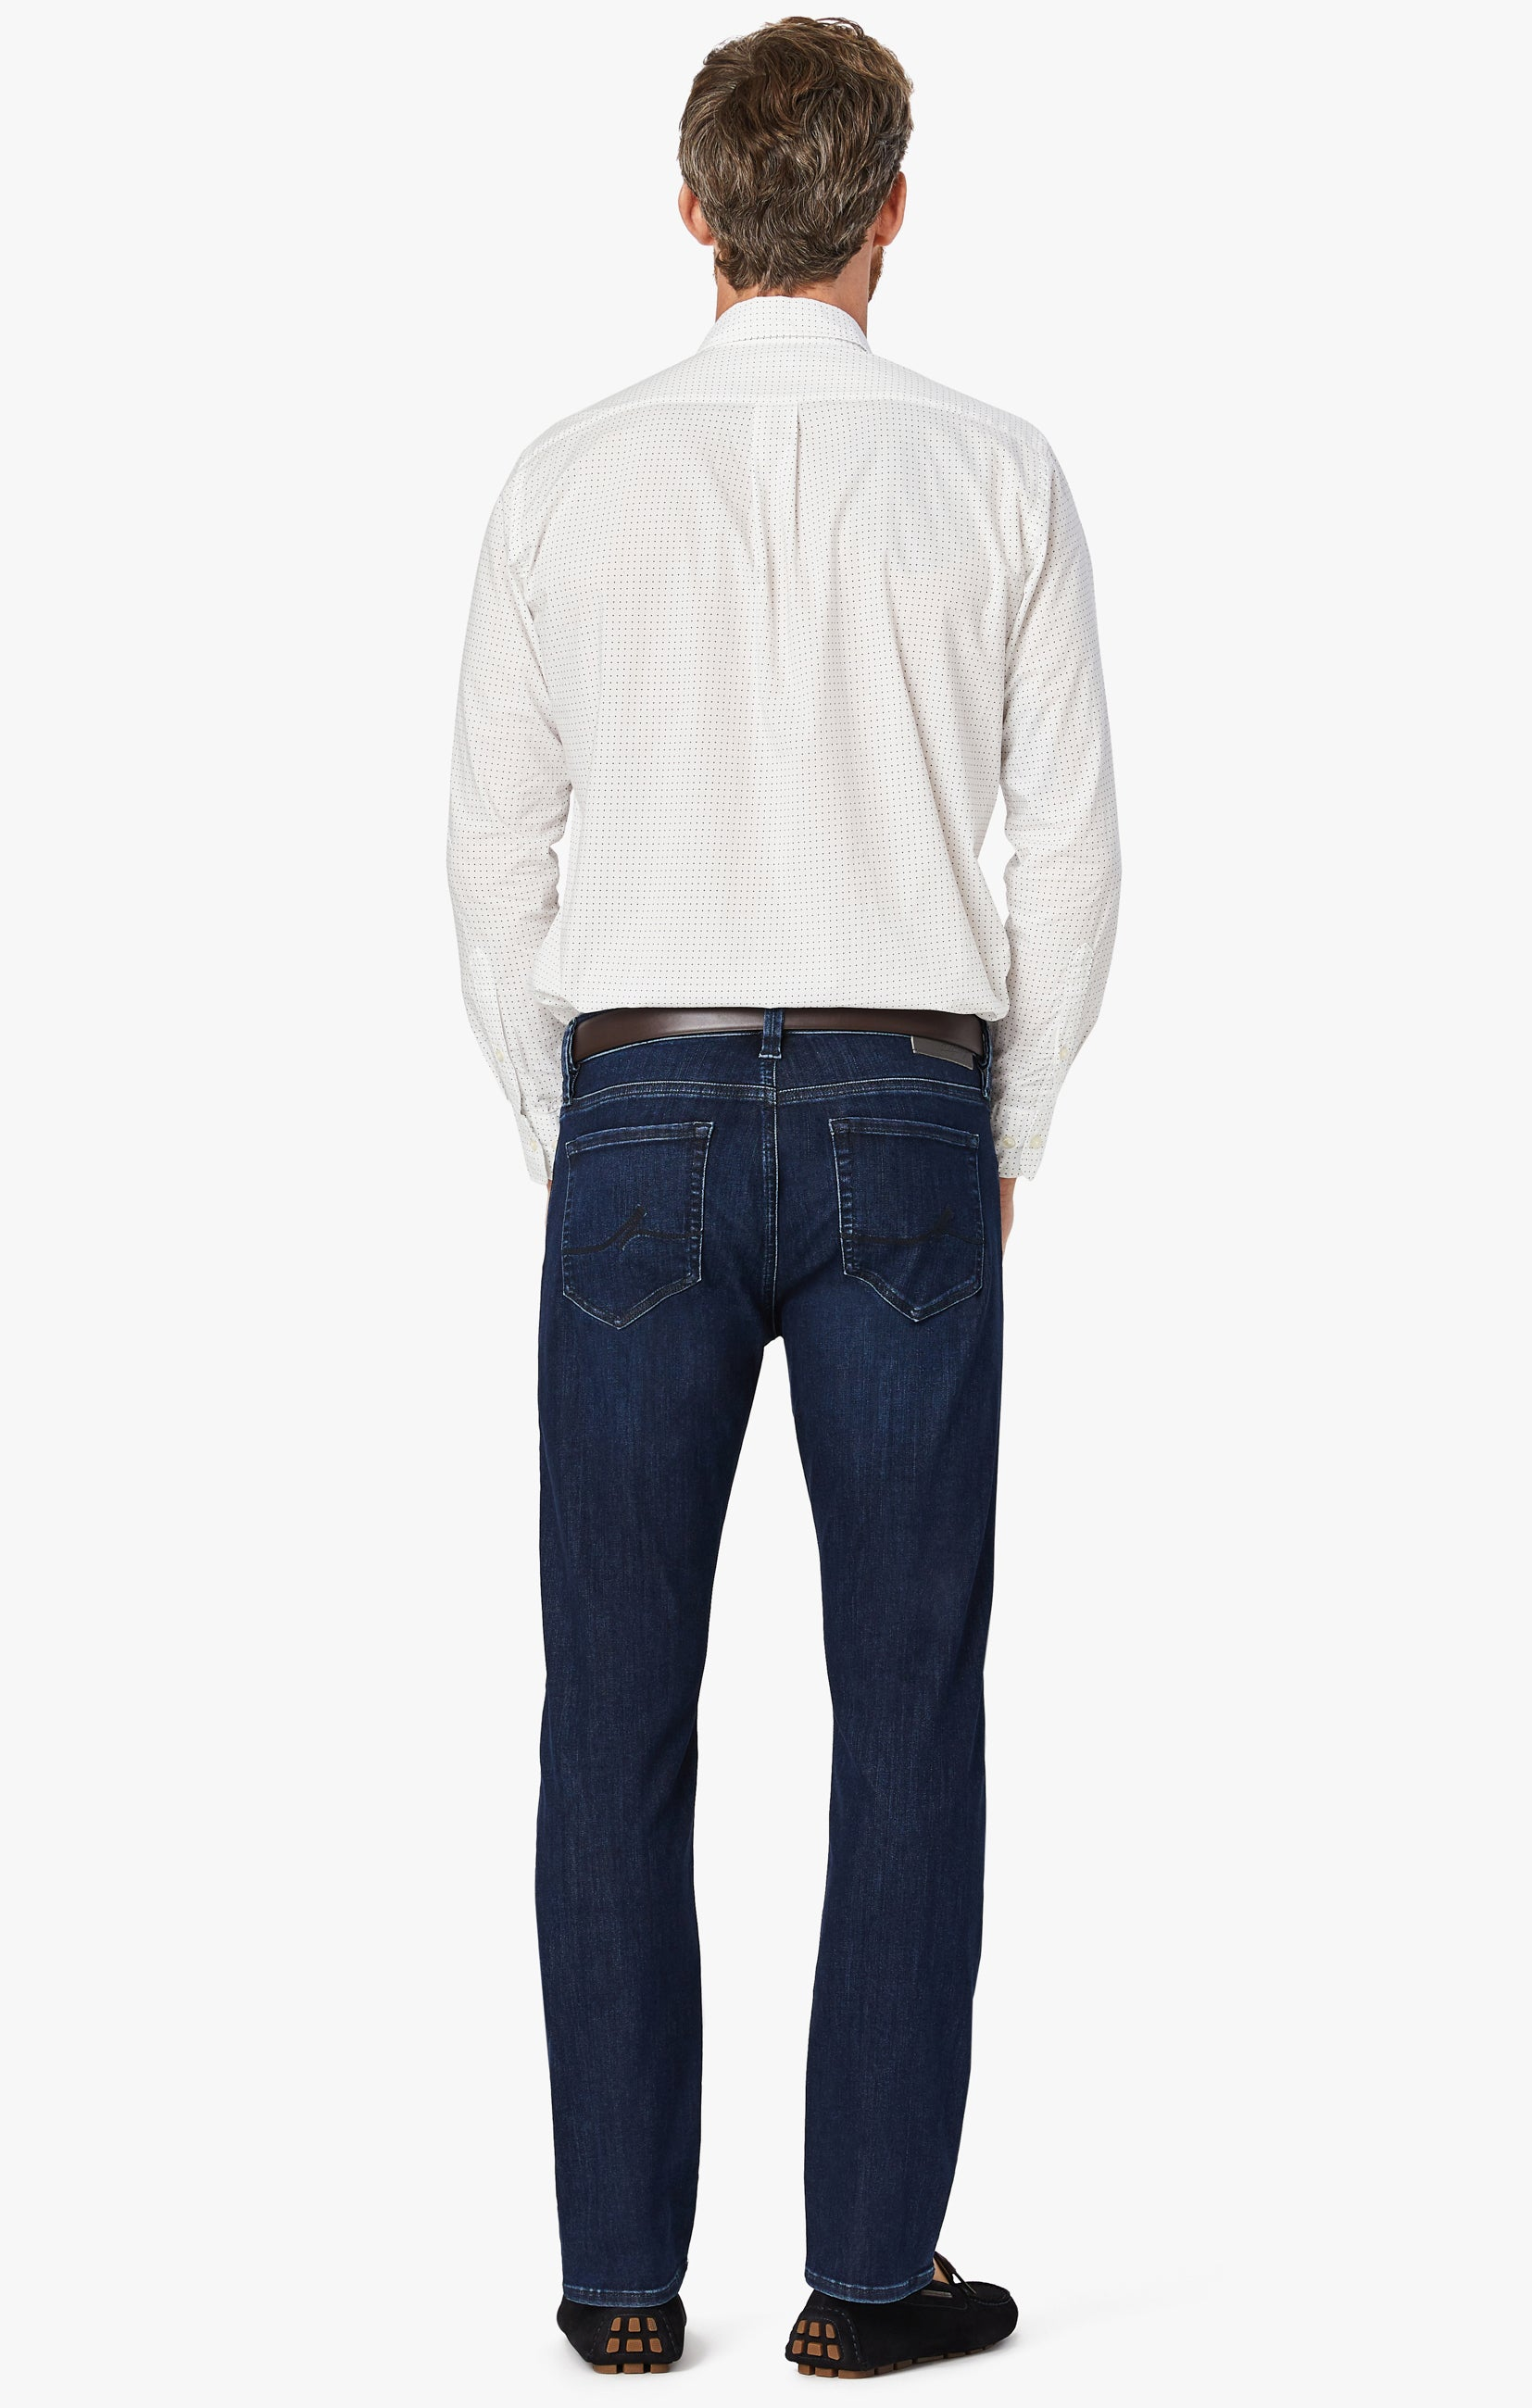 Courage Straight Leg Jeans In Blue Urban Image 5